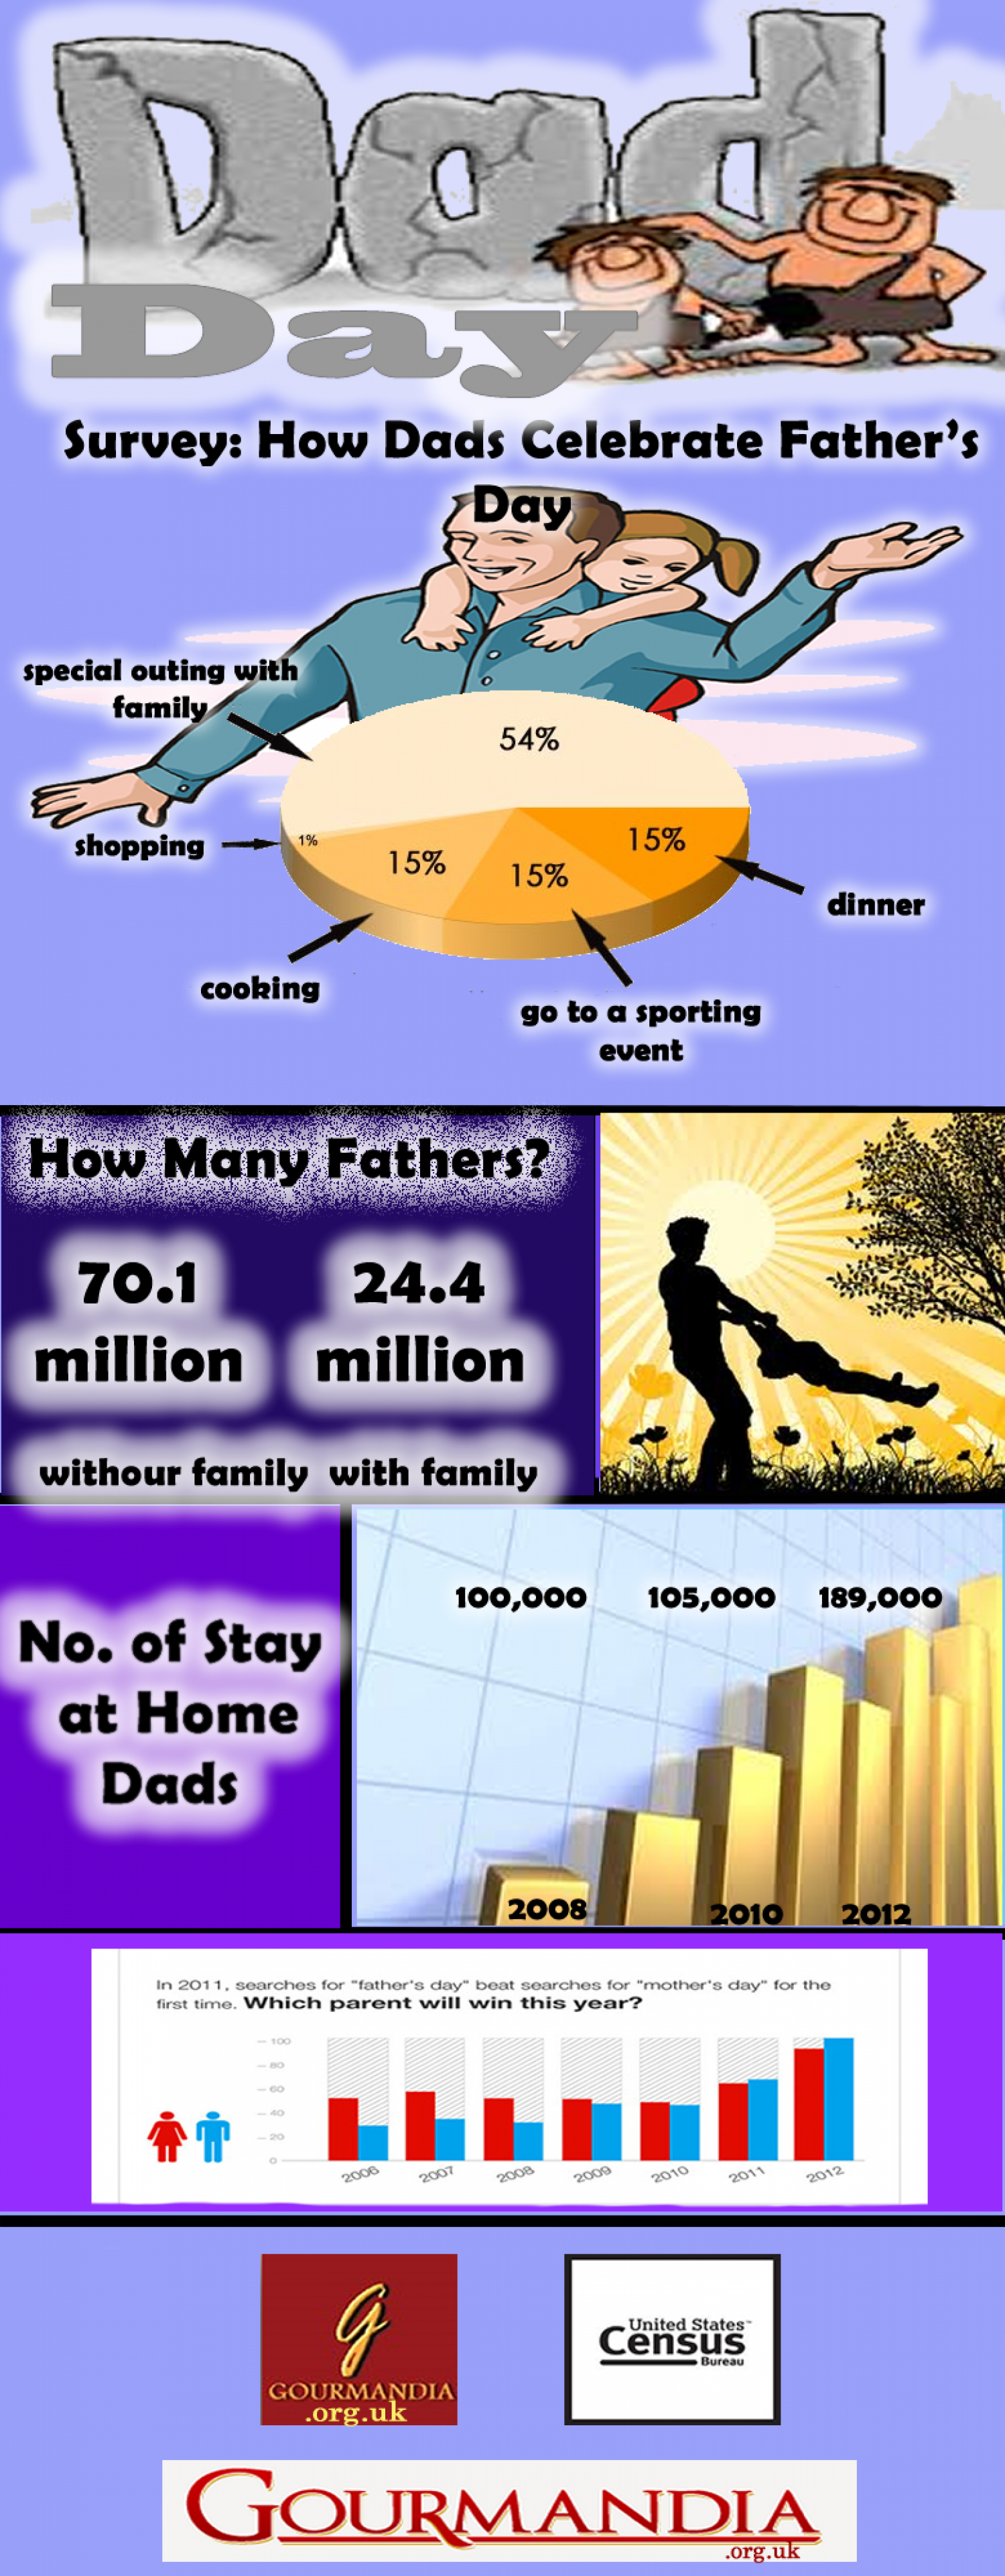 Dad's Day Infographic